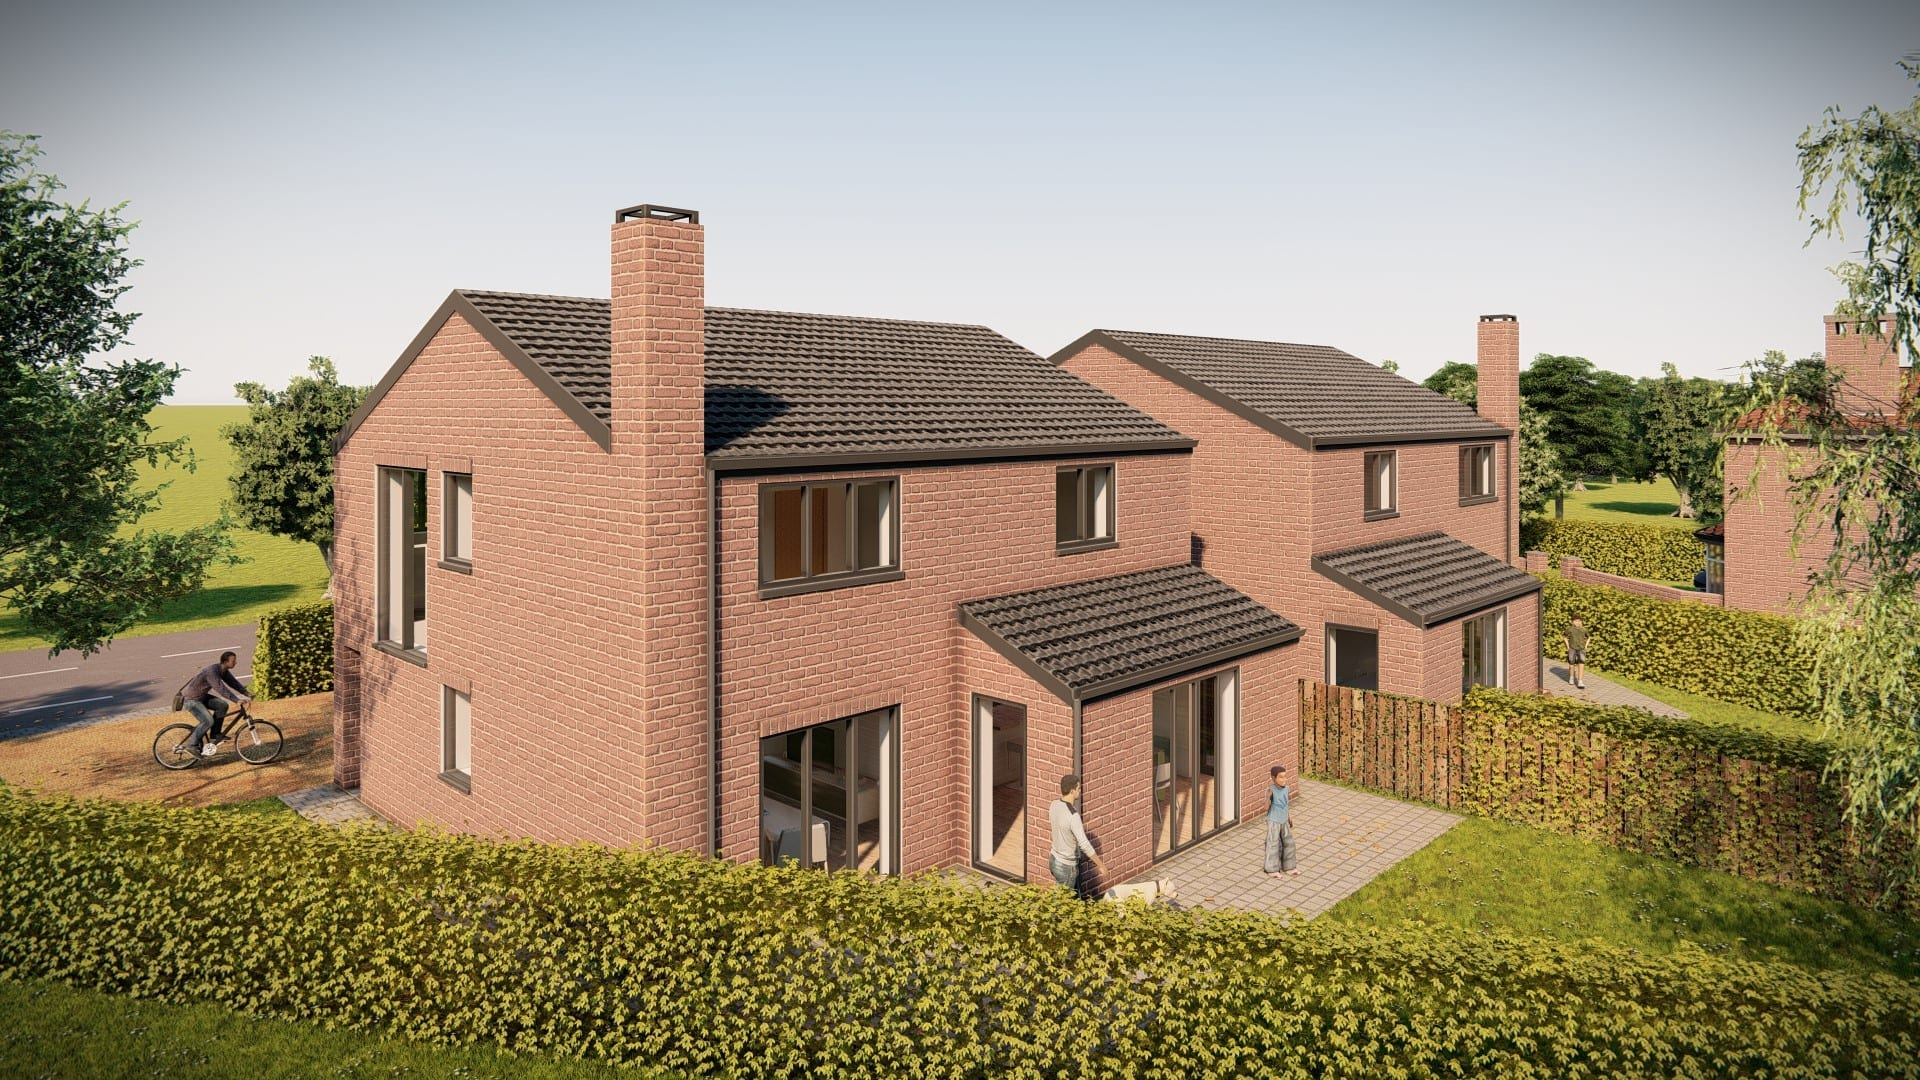 design concept for two rural dwellings holmes chapel